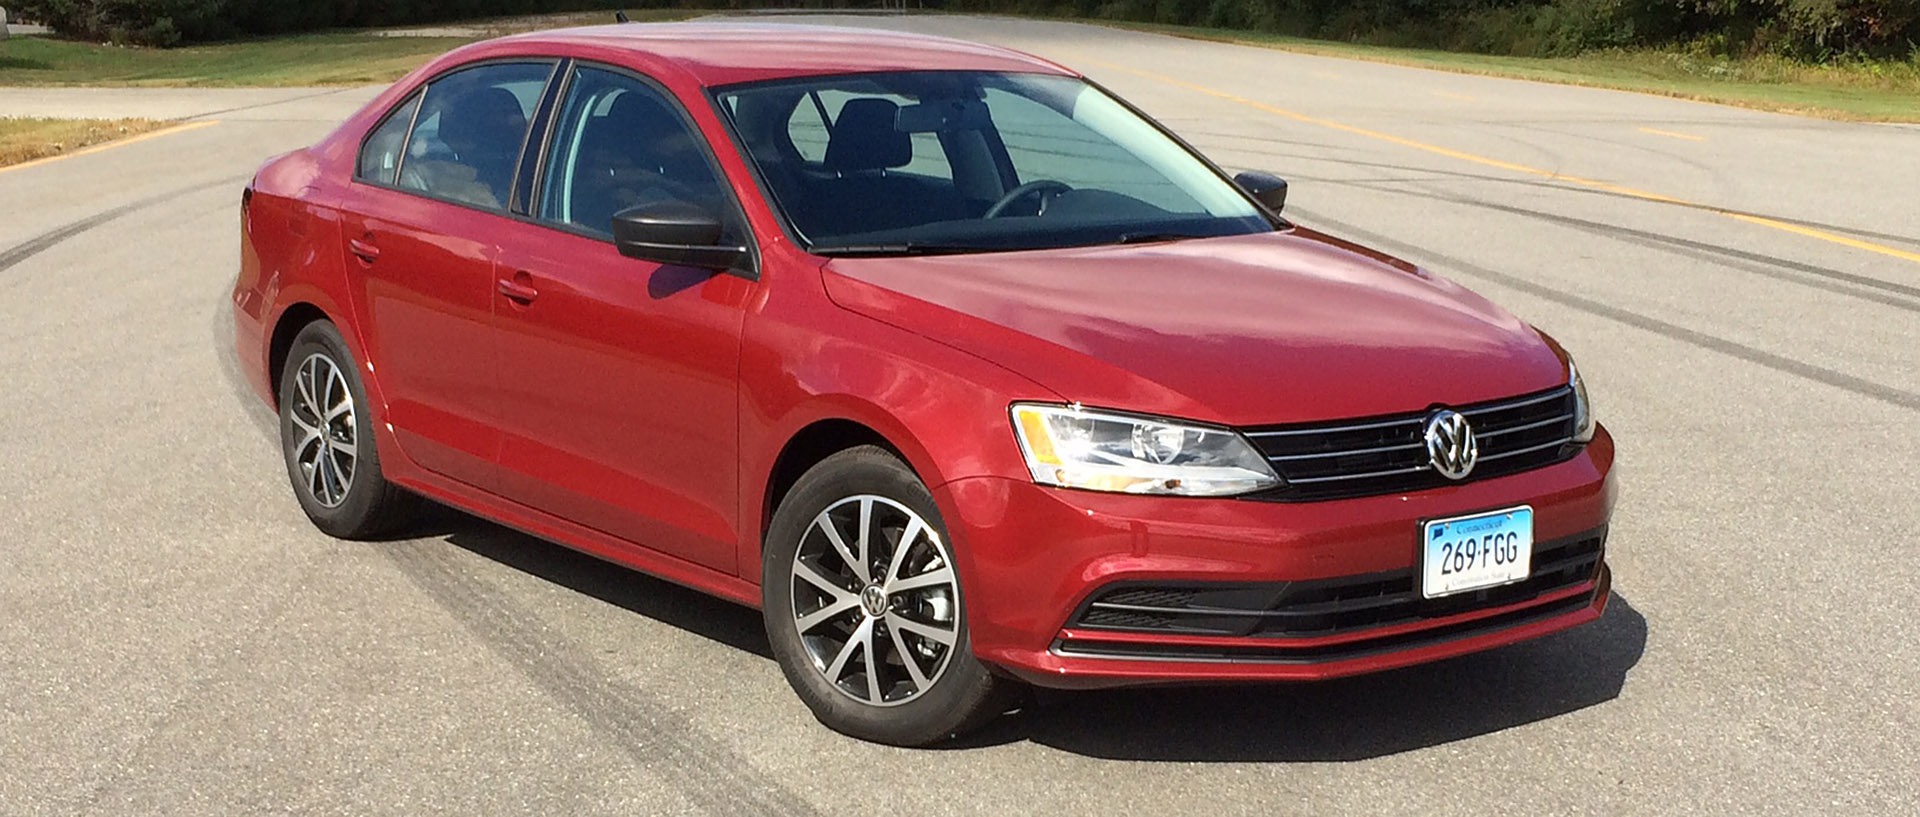 2016 Jetta Gli Review >> 2016 Volkswagen Jetta 1.4T Review - Consumer Reports